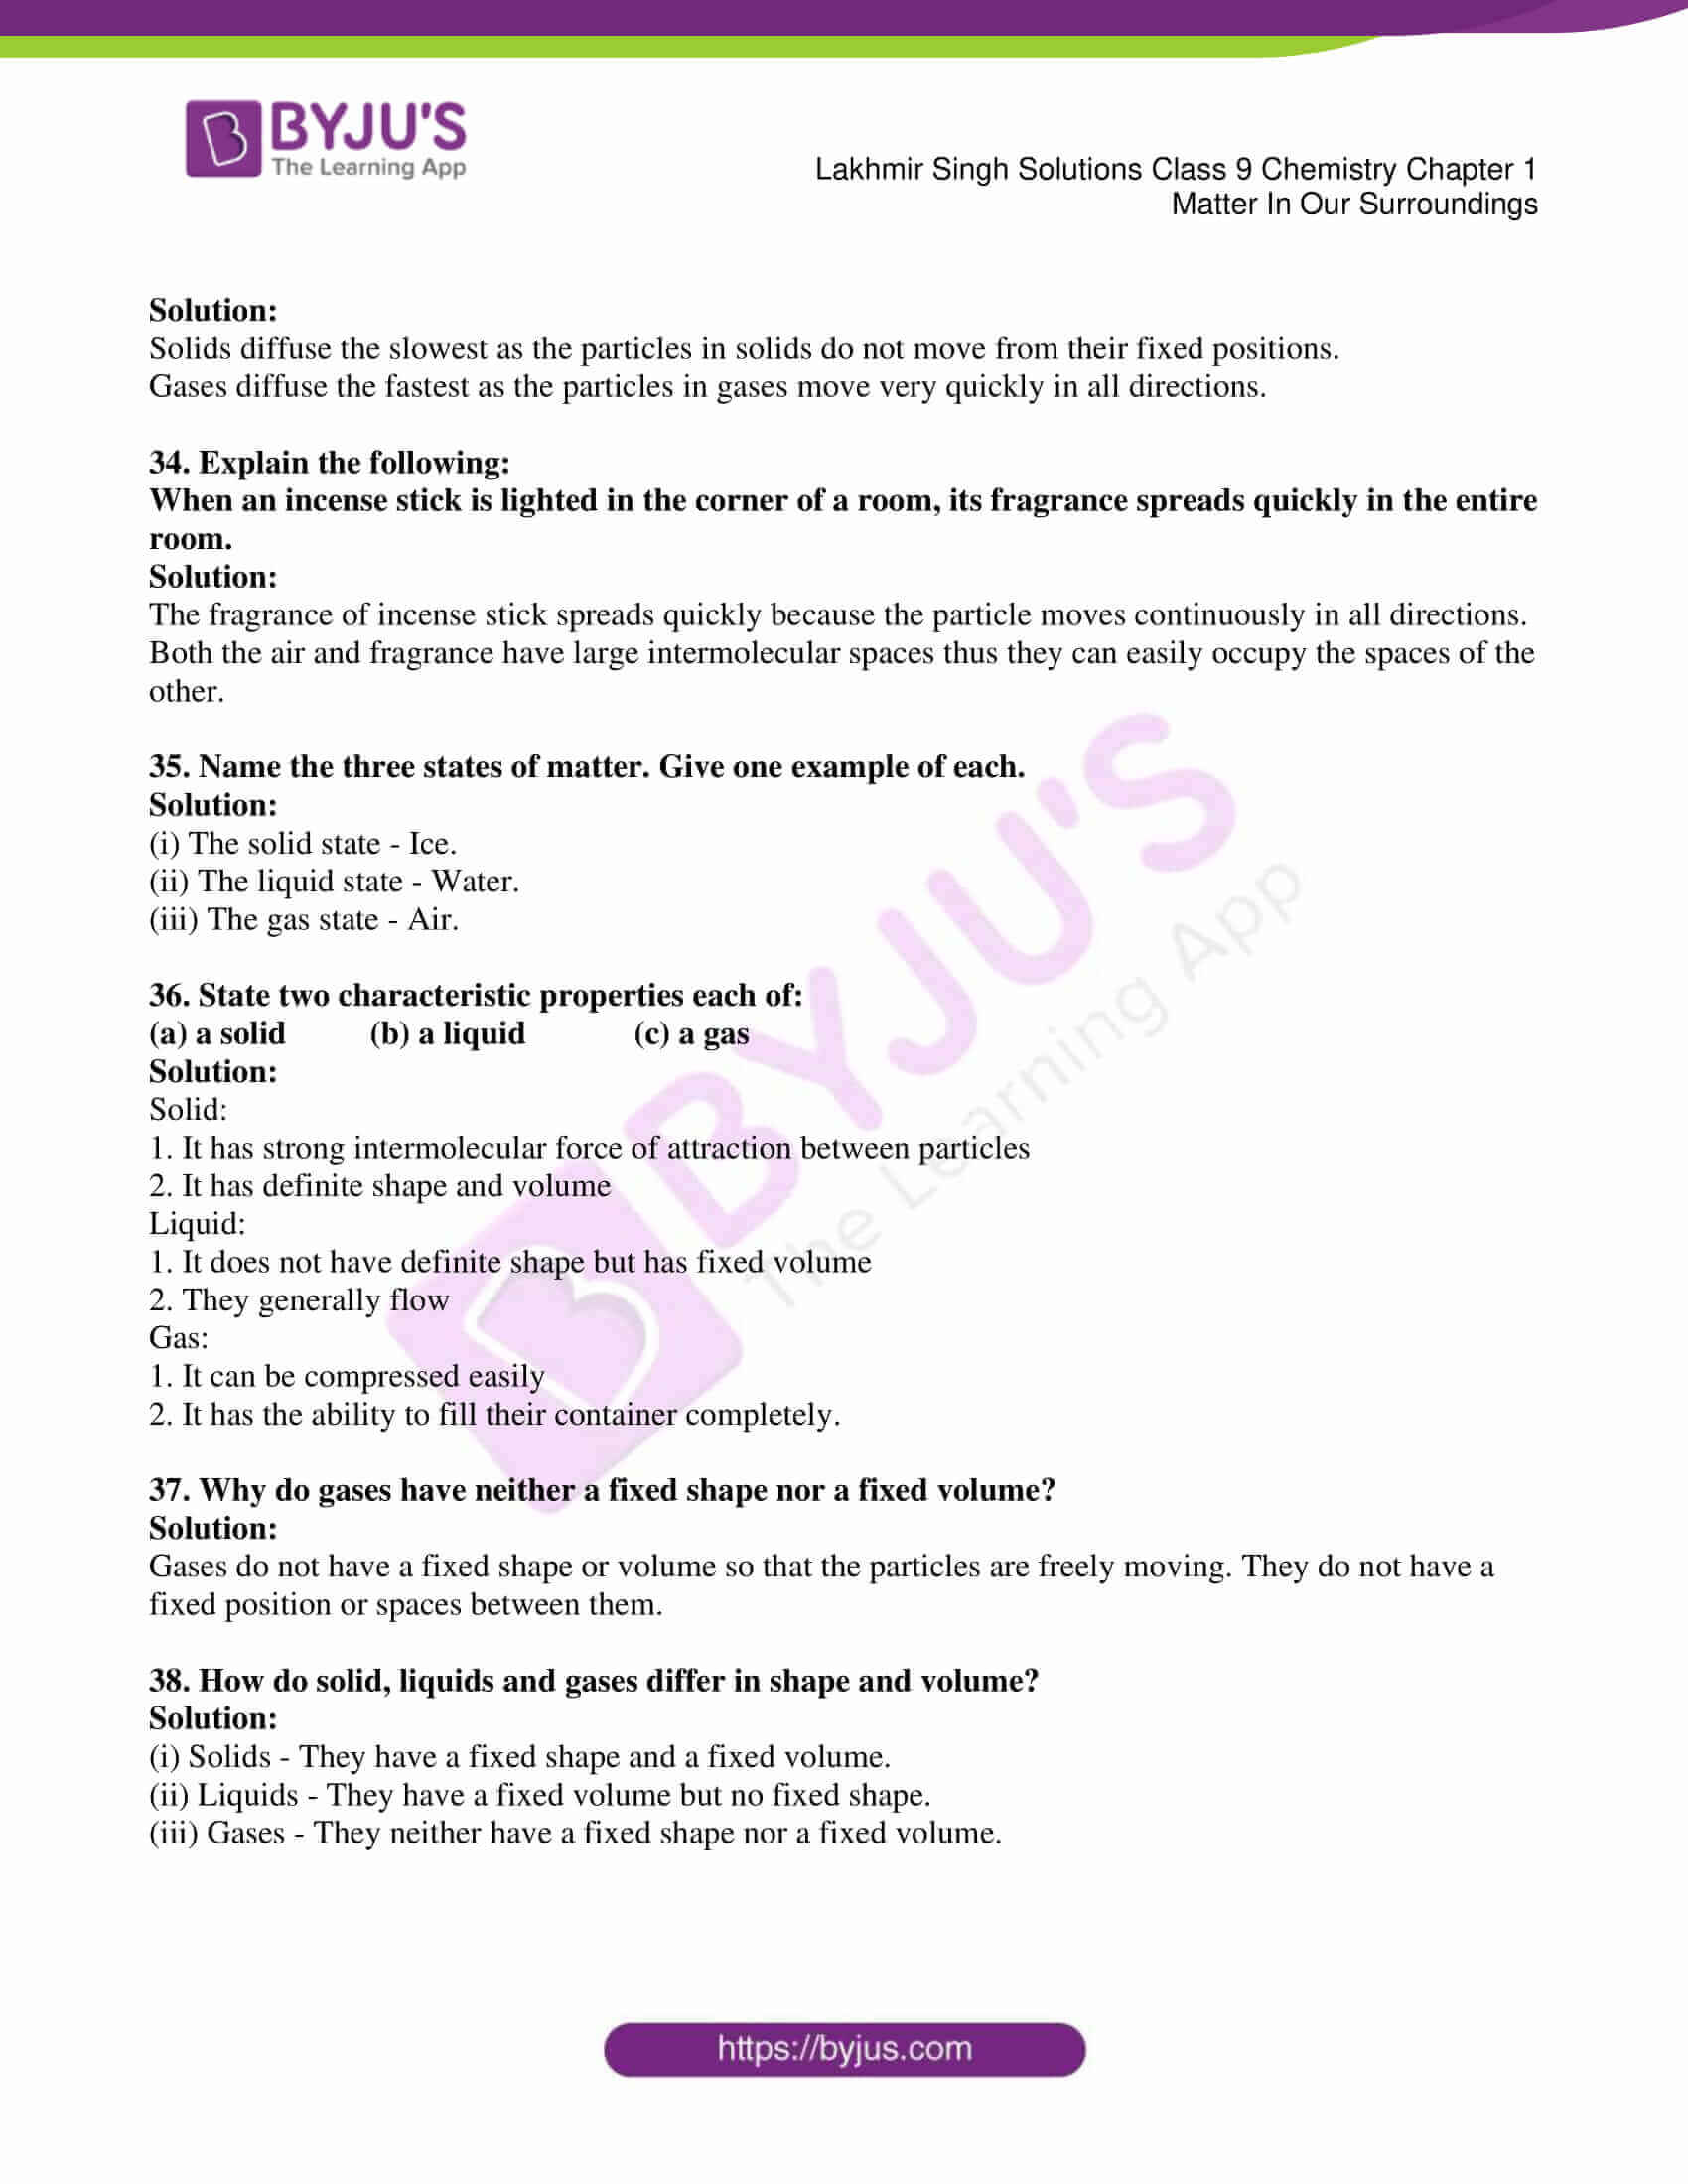 lakhmir singh solutions class 9 chemistry chapter 1 06